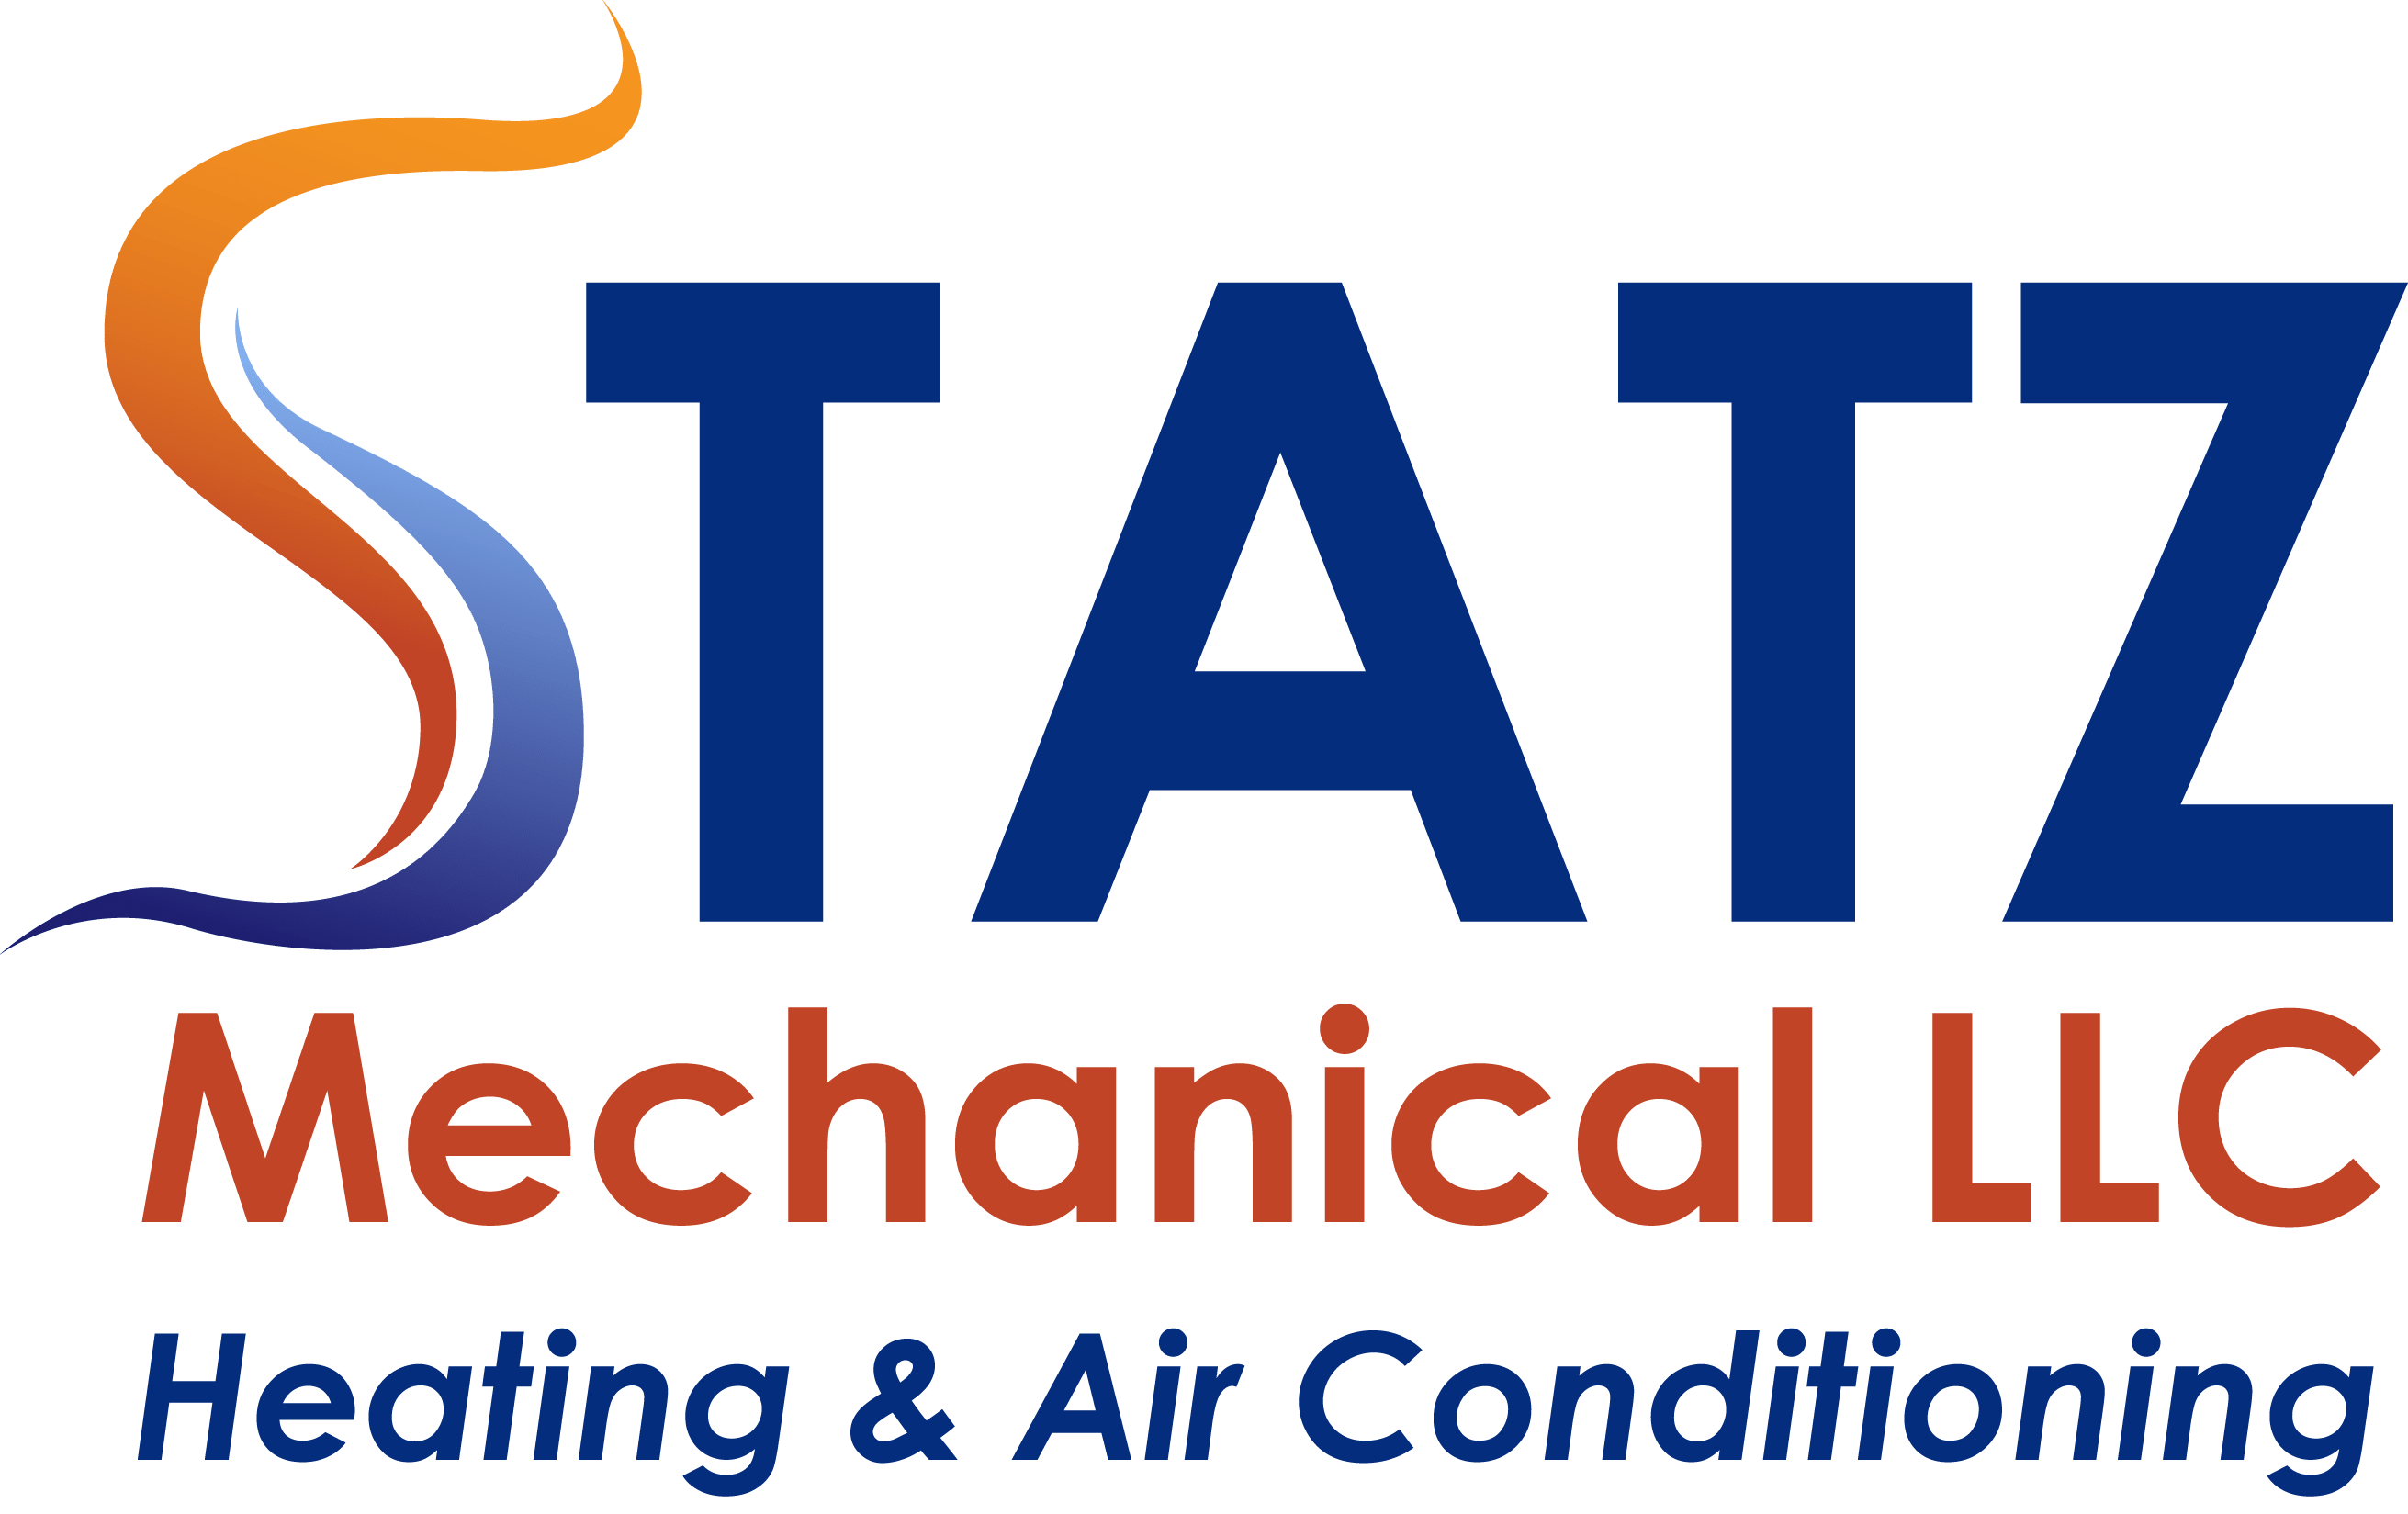 Get your AC service done in Baraboo WI by Statz Mechanical LLC